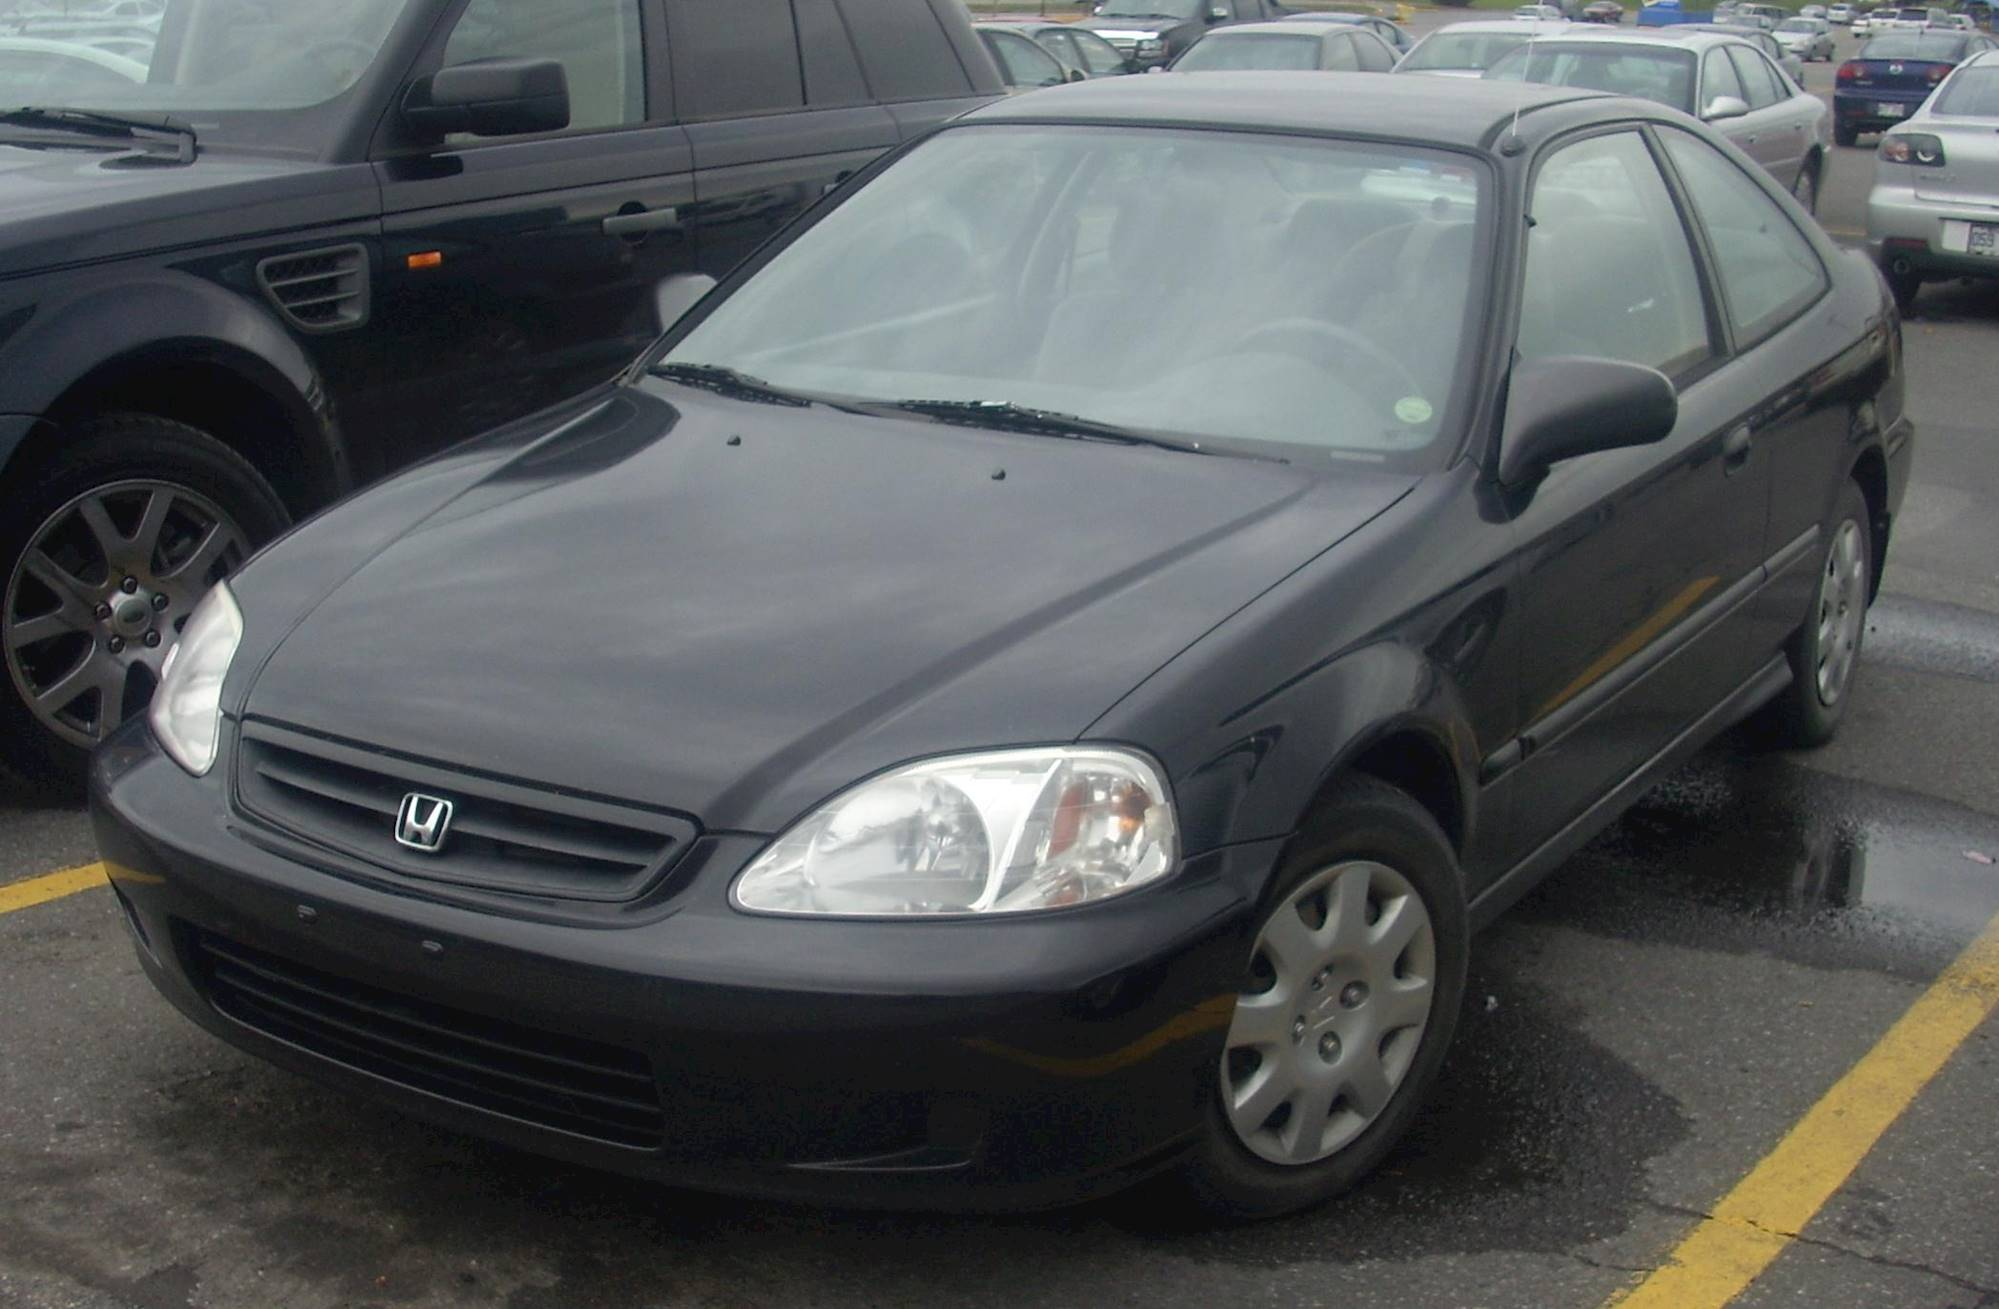 ... File:1999-2000 Honda Civic Coupe.JPG - Wikimedia Commons 2000 Honda  Civic Hatchback ...